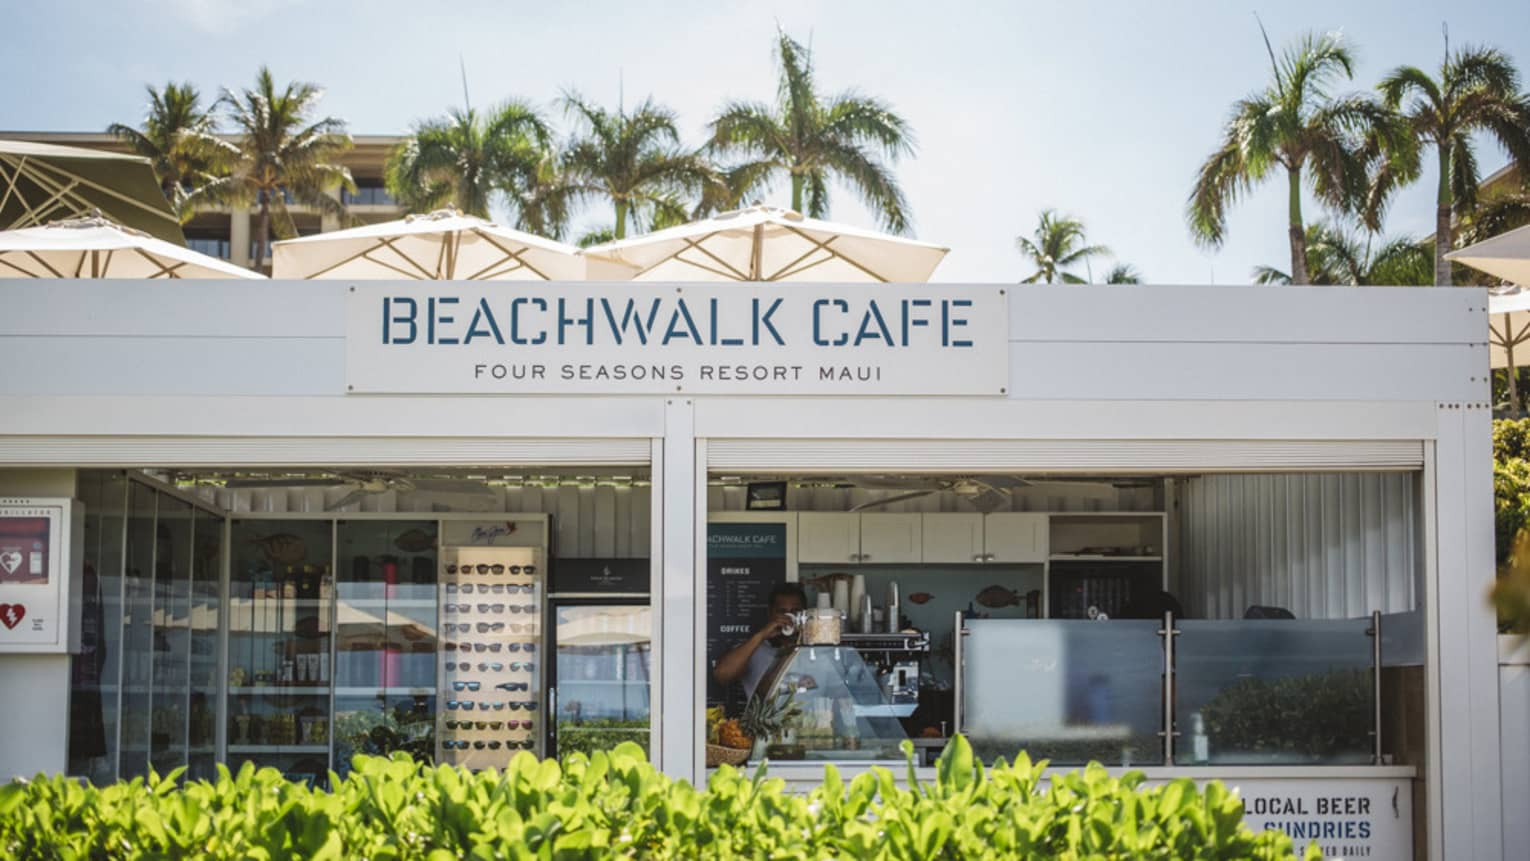 The front of the Beachwalk Cafe in Maui